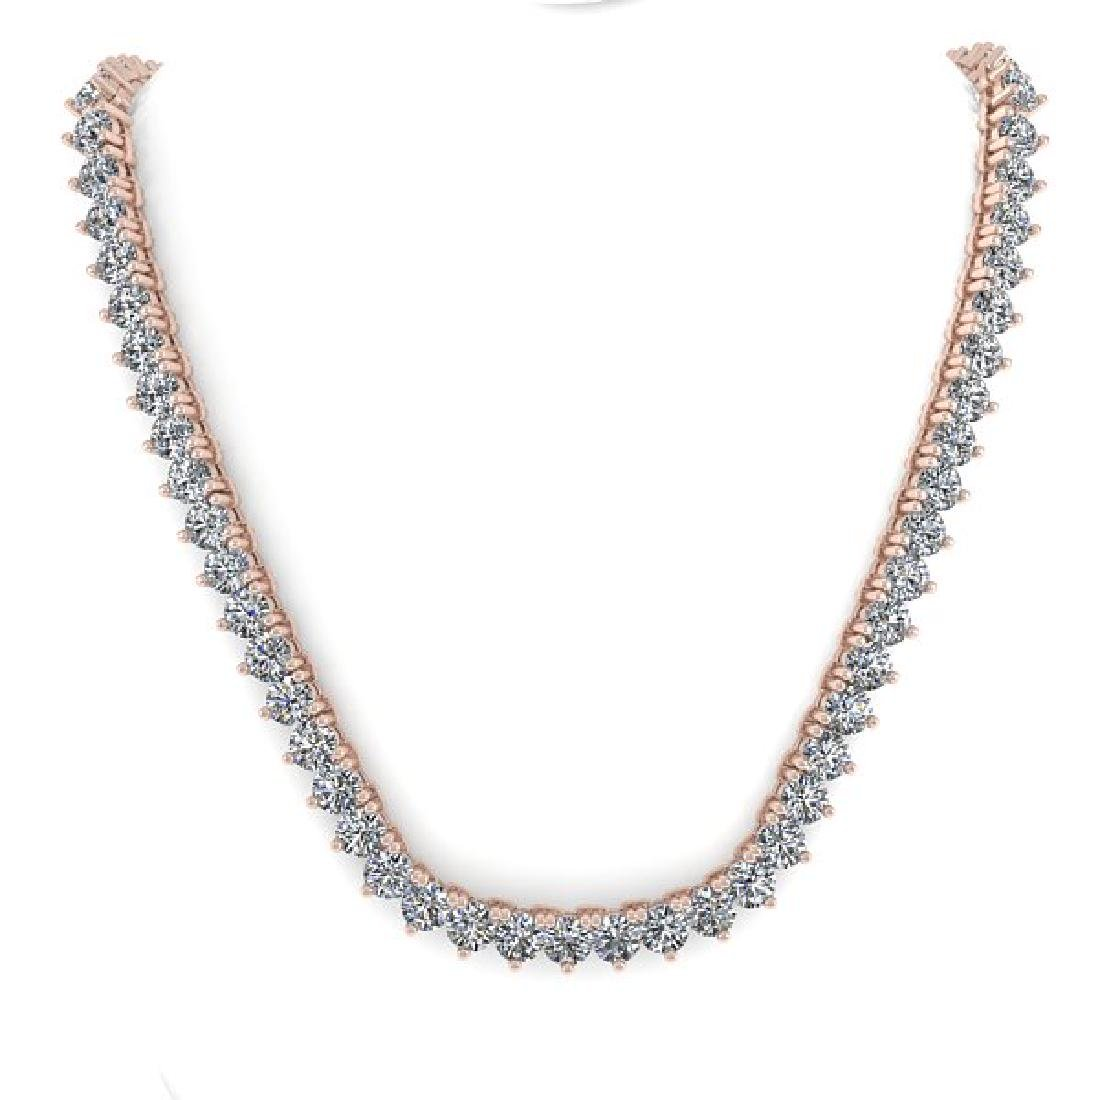 33 CTW Solitaire SI Diamond Necklace 18K Rose Gold - 3